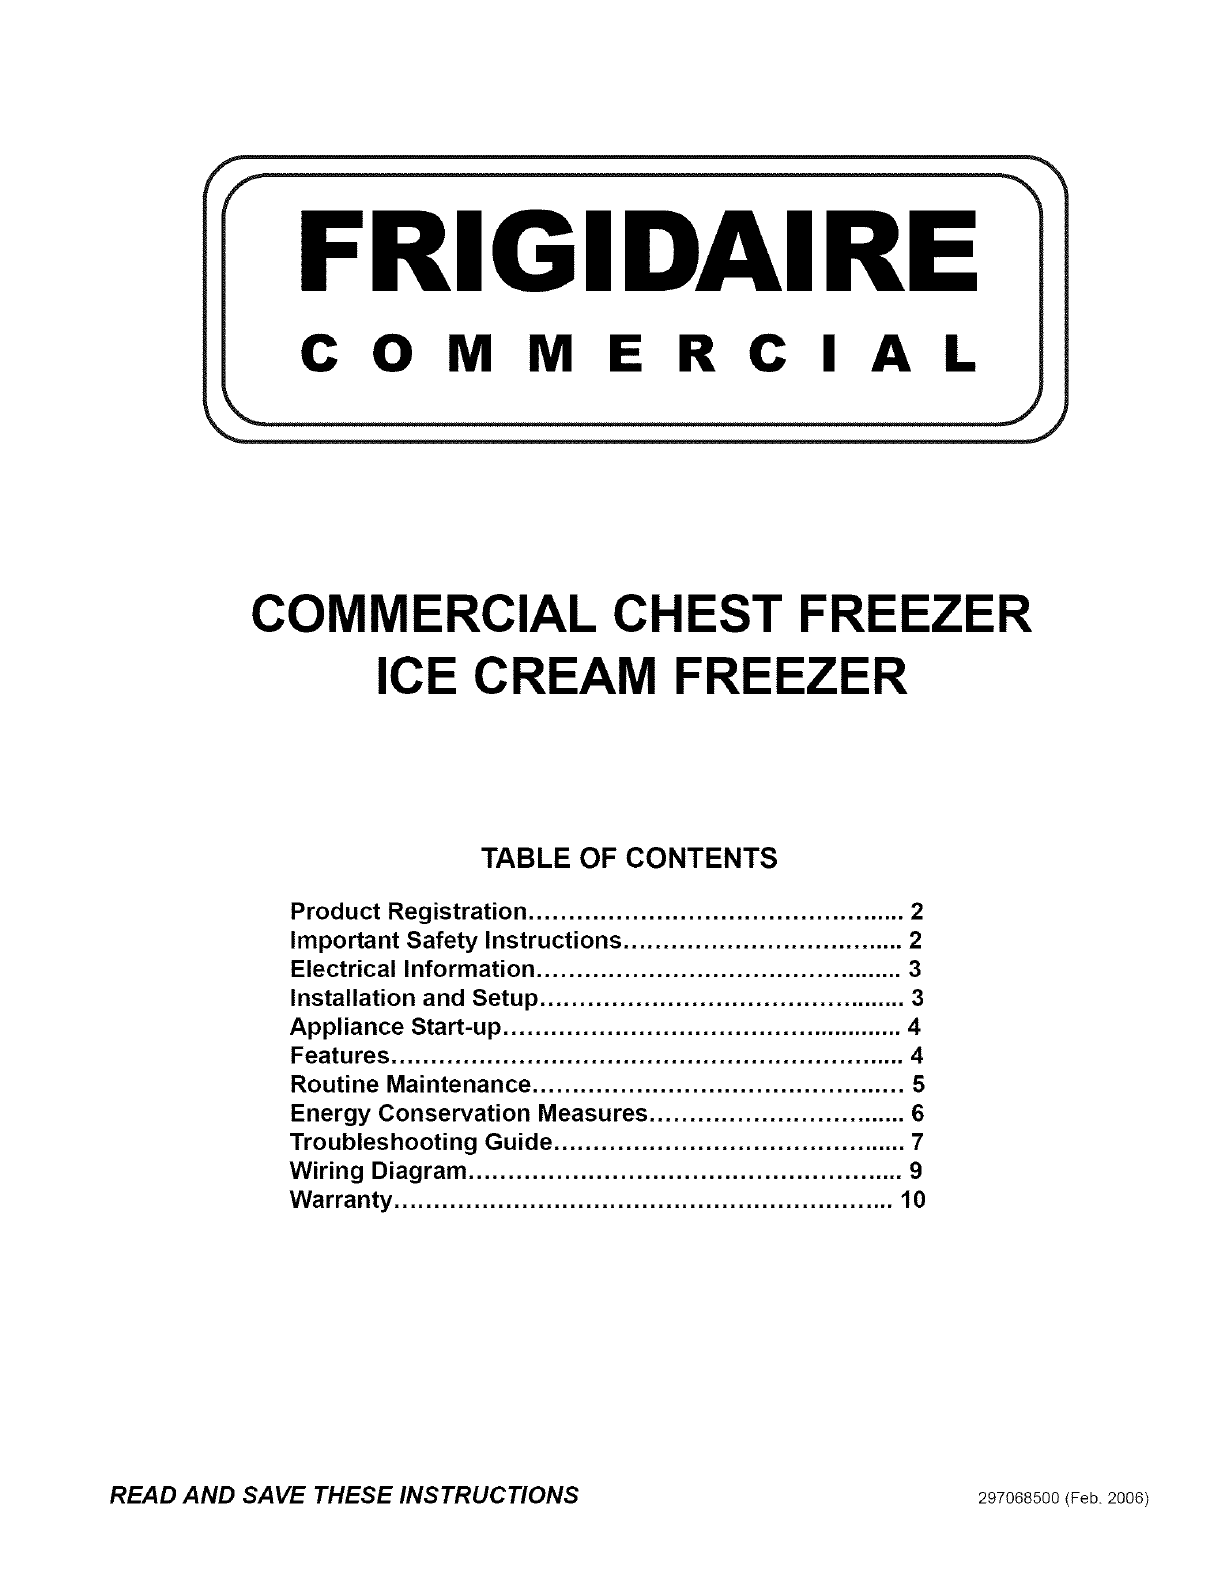 Frigidaire Fcc2071fw2 User Manual Freezer Manuals And Guides L0610623 Wiring Diagram